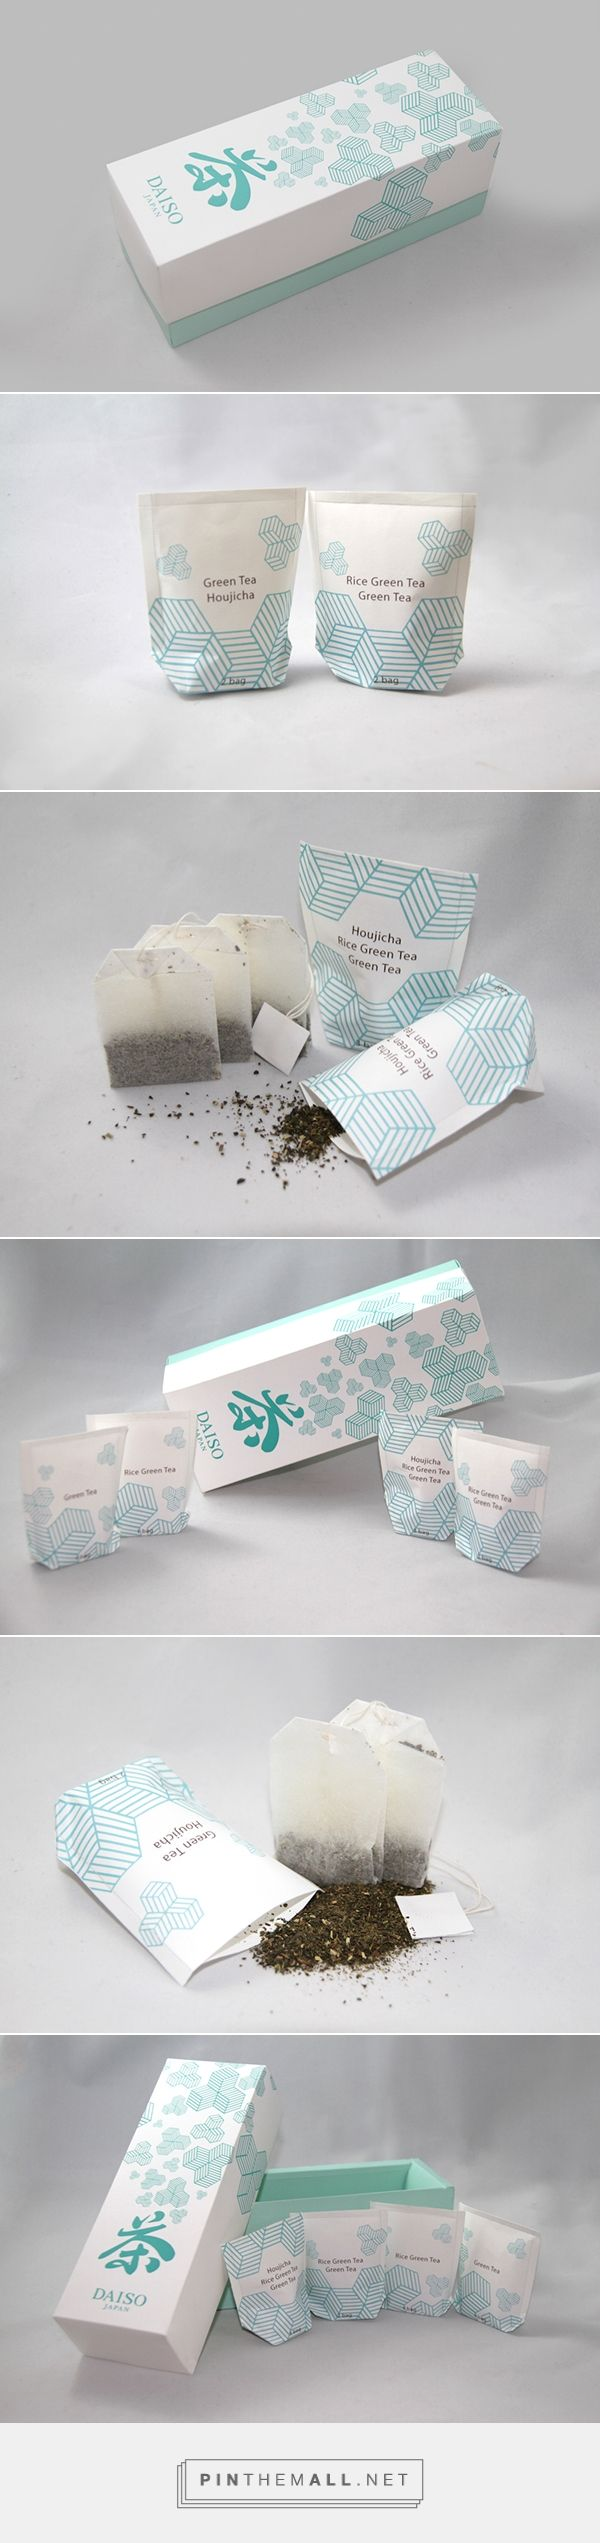 Tea Gift Set Packaging on Behance via Wilona Wirianta curated by Packaging Diva…